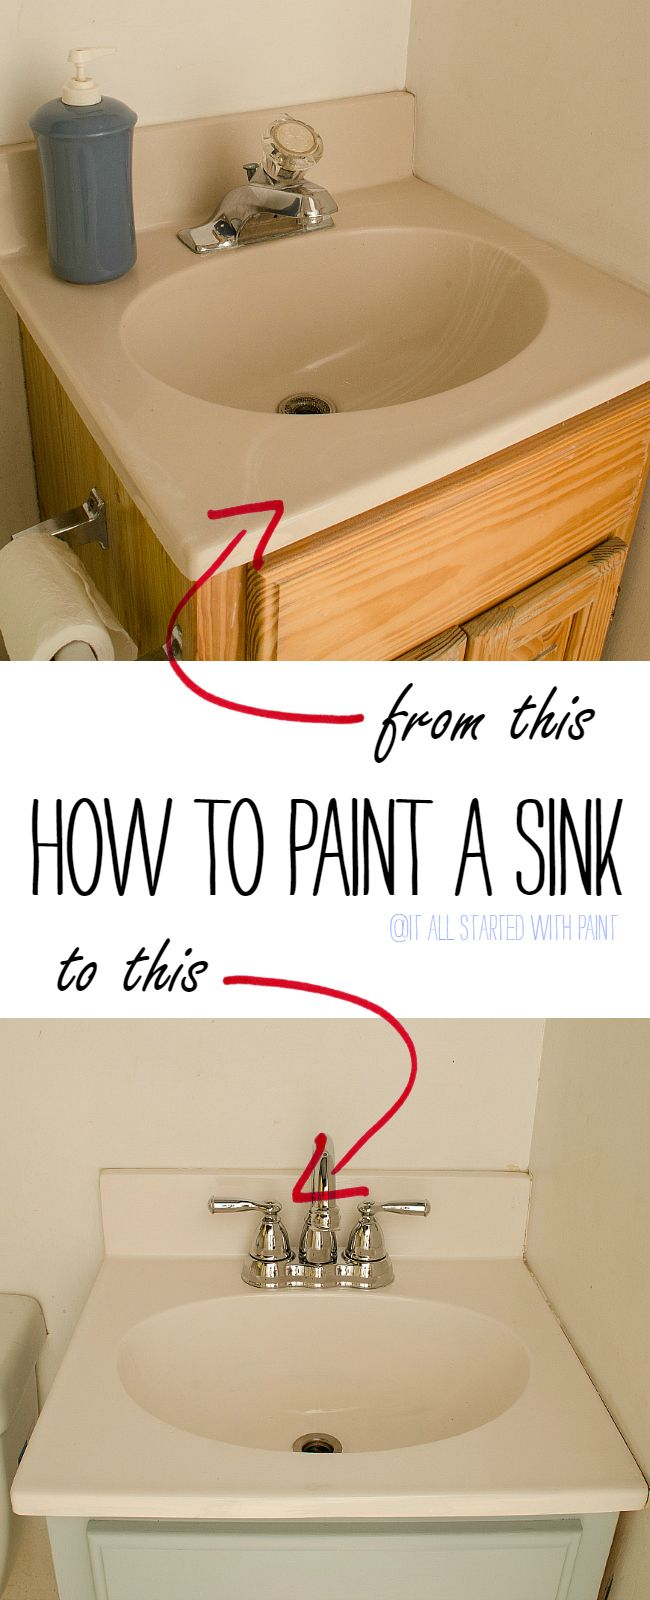 Paint Your Sink It All Started With Paint Painting A Sink Diy Bathroom Top Bathroom Design [ 1600 x 650 Pixel ]